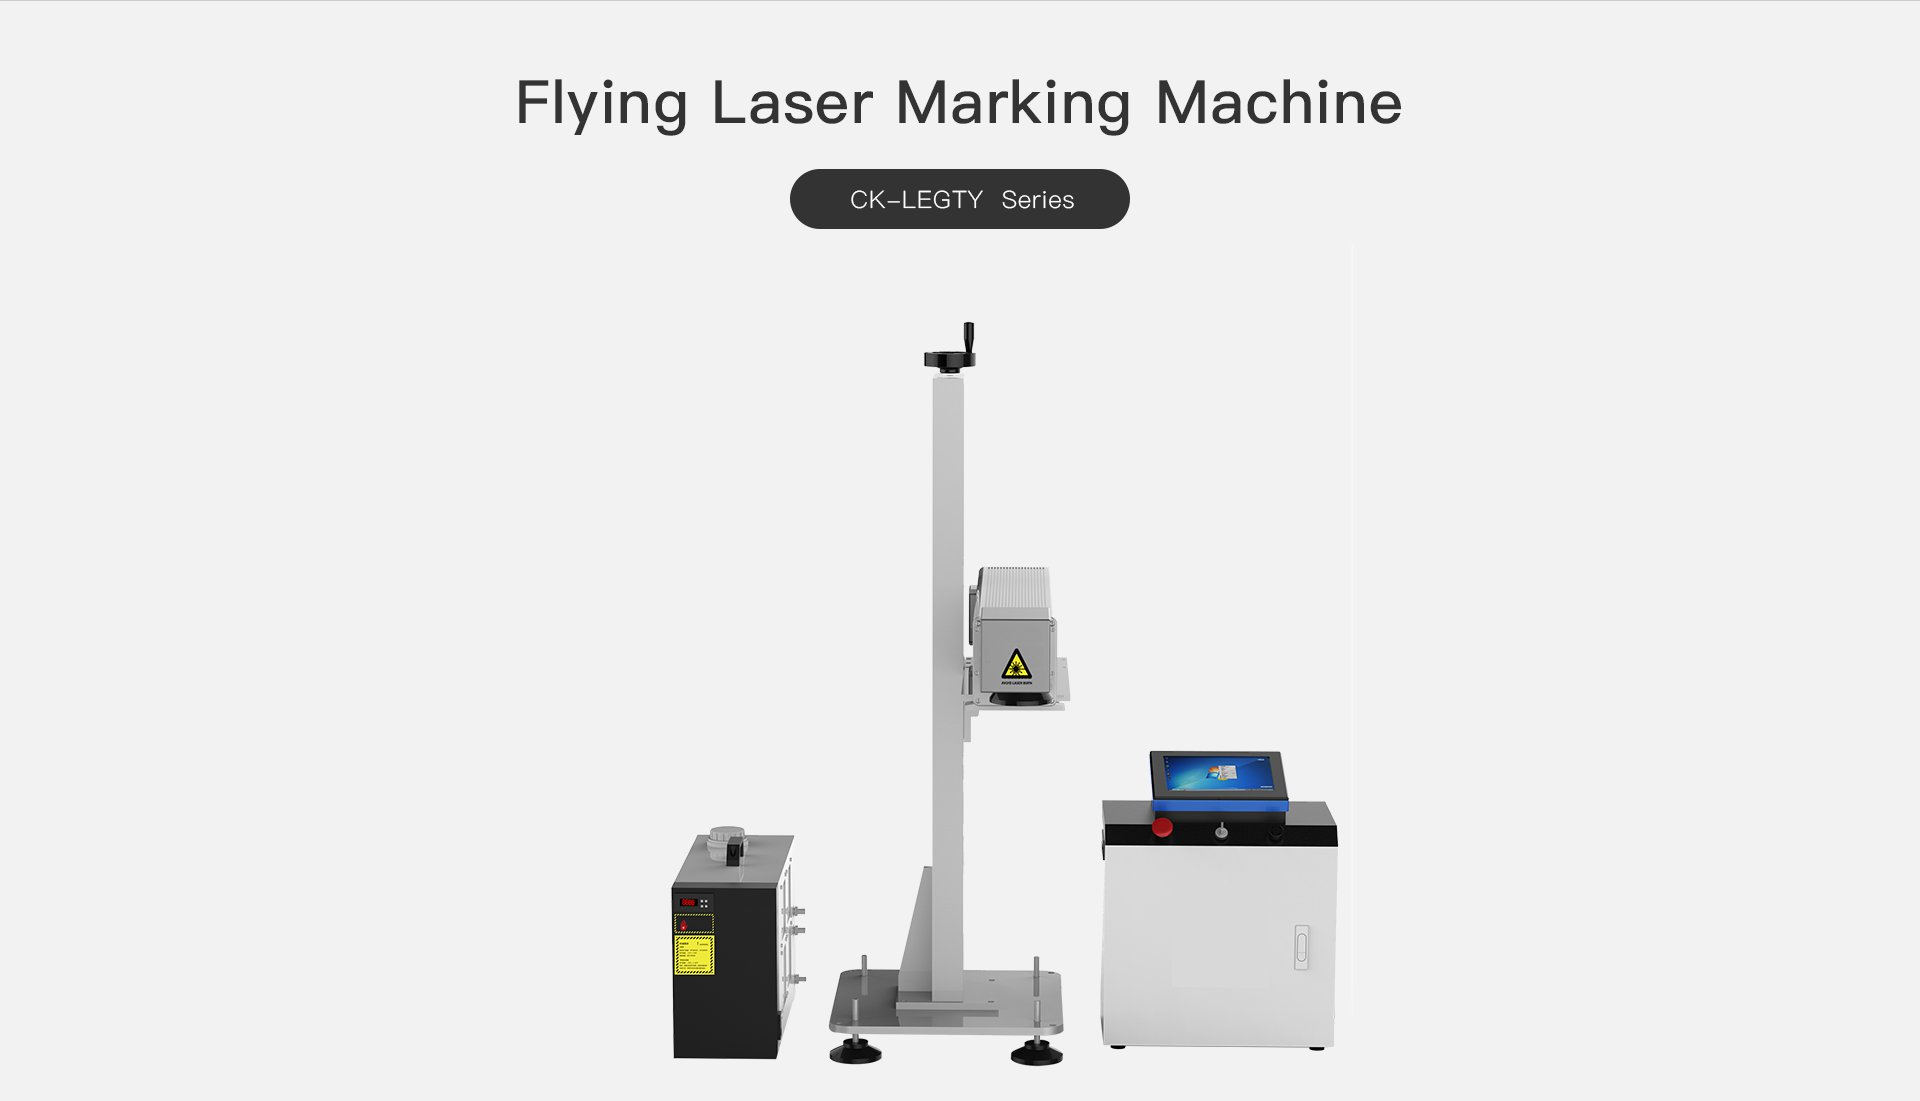 Taste Laser-laser etching equipment